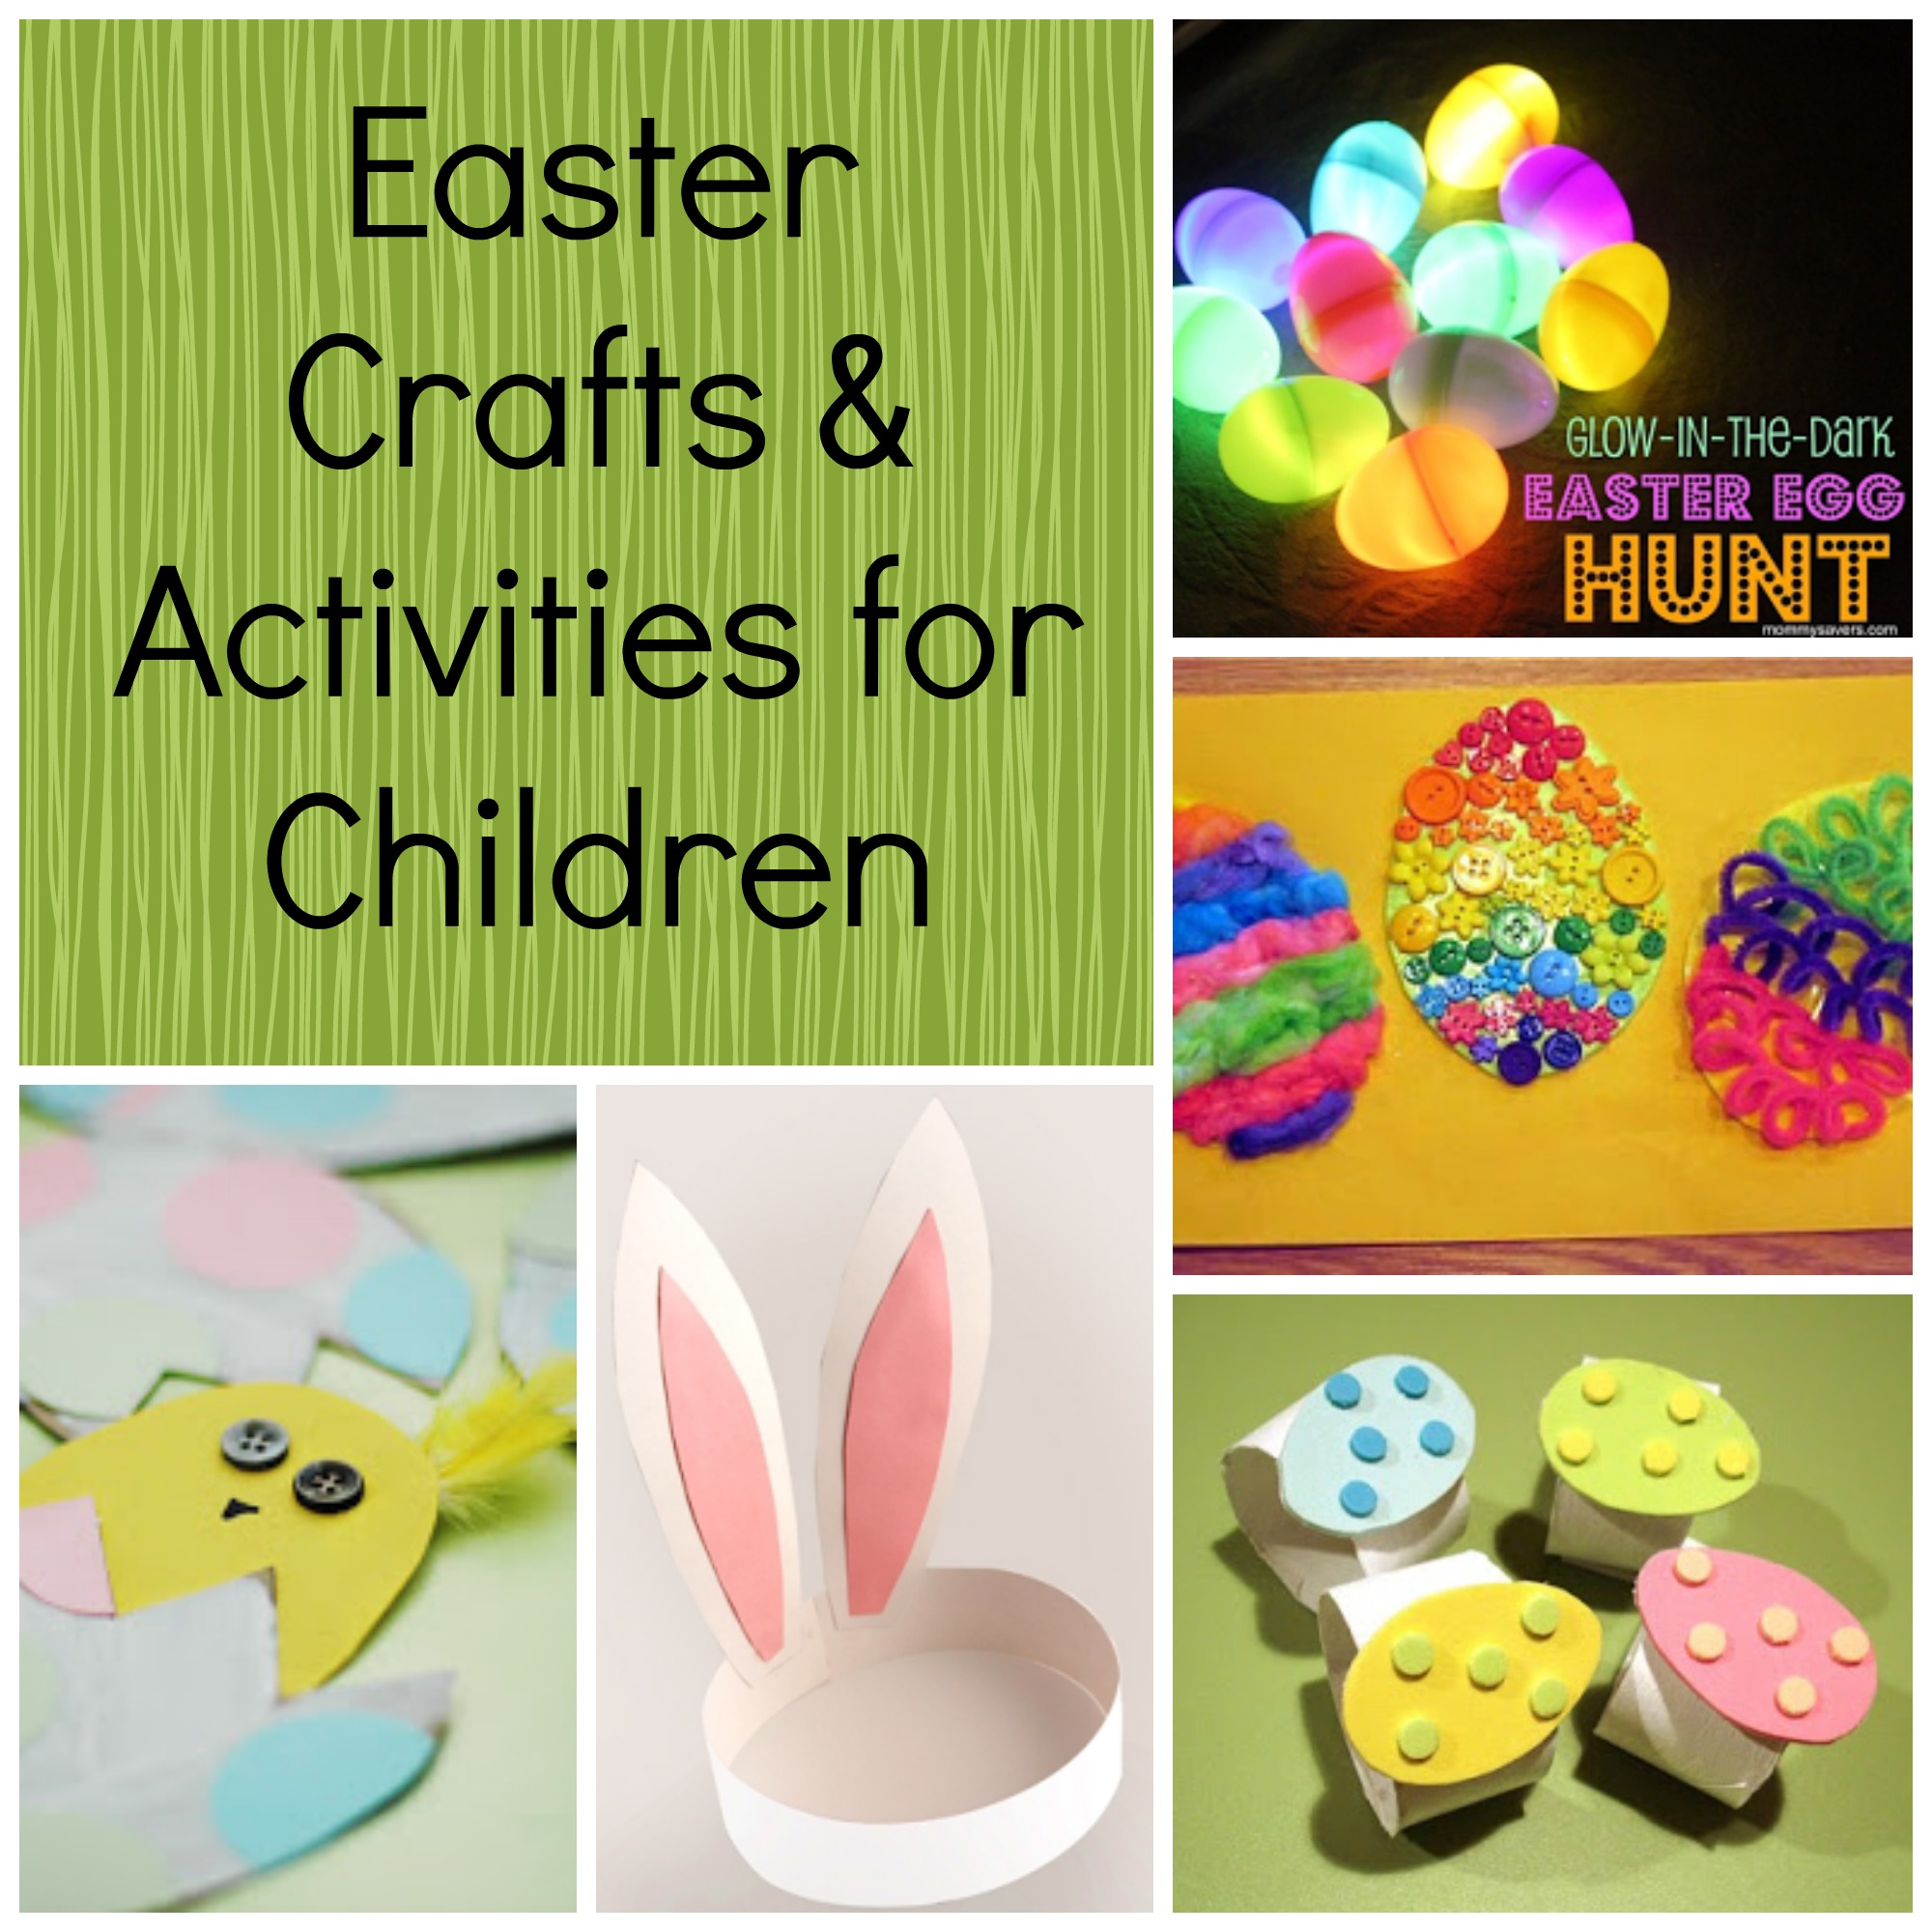 easter crafts activities for children saving cent by cent